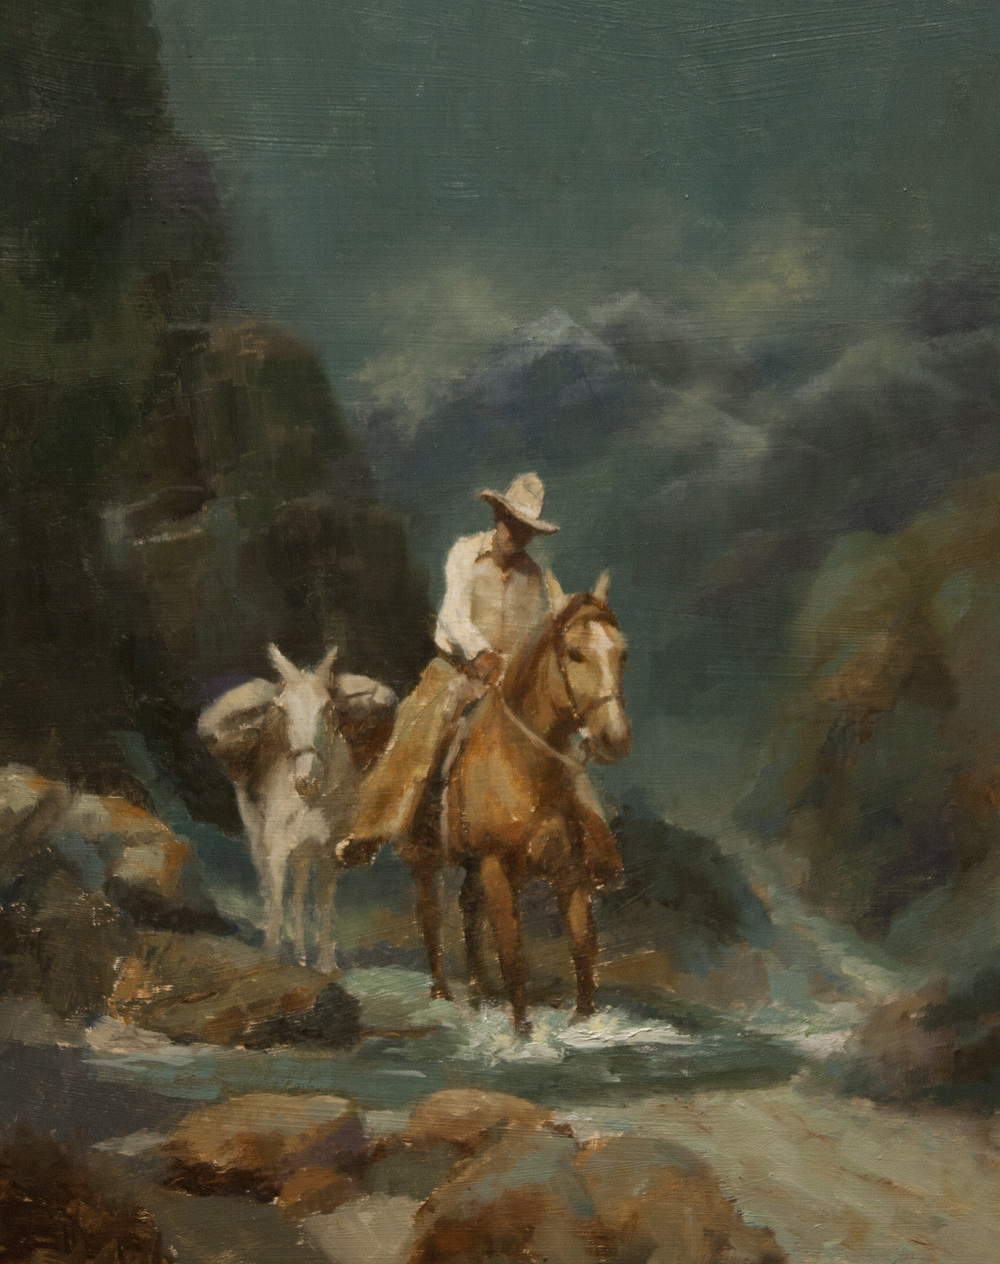 This is one of Western artist George Paliotto's original oil paintings depicting contemporary and historical cowboy life. Contact the artist for more information about purchasing this painting.